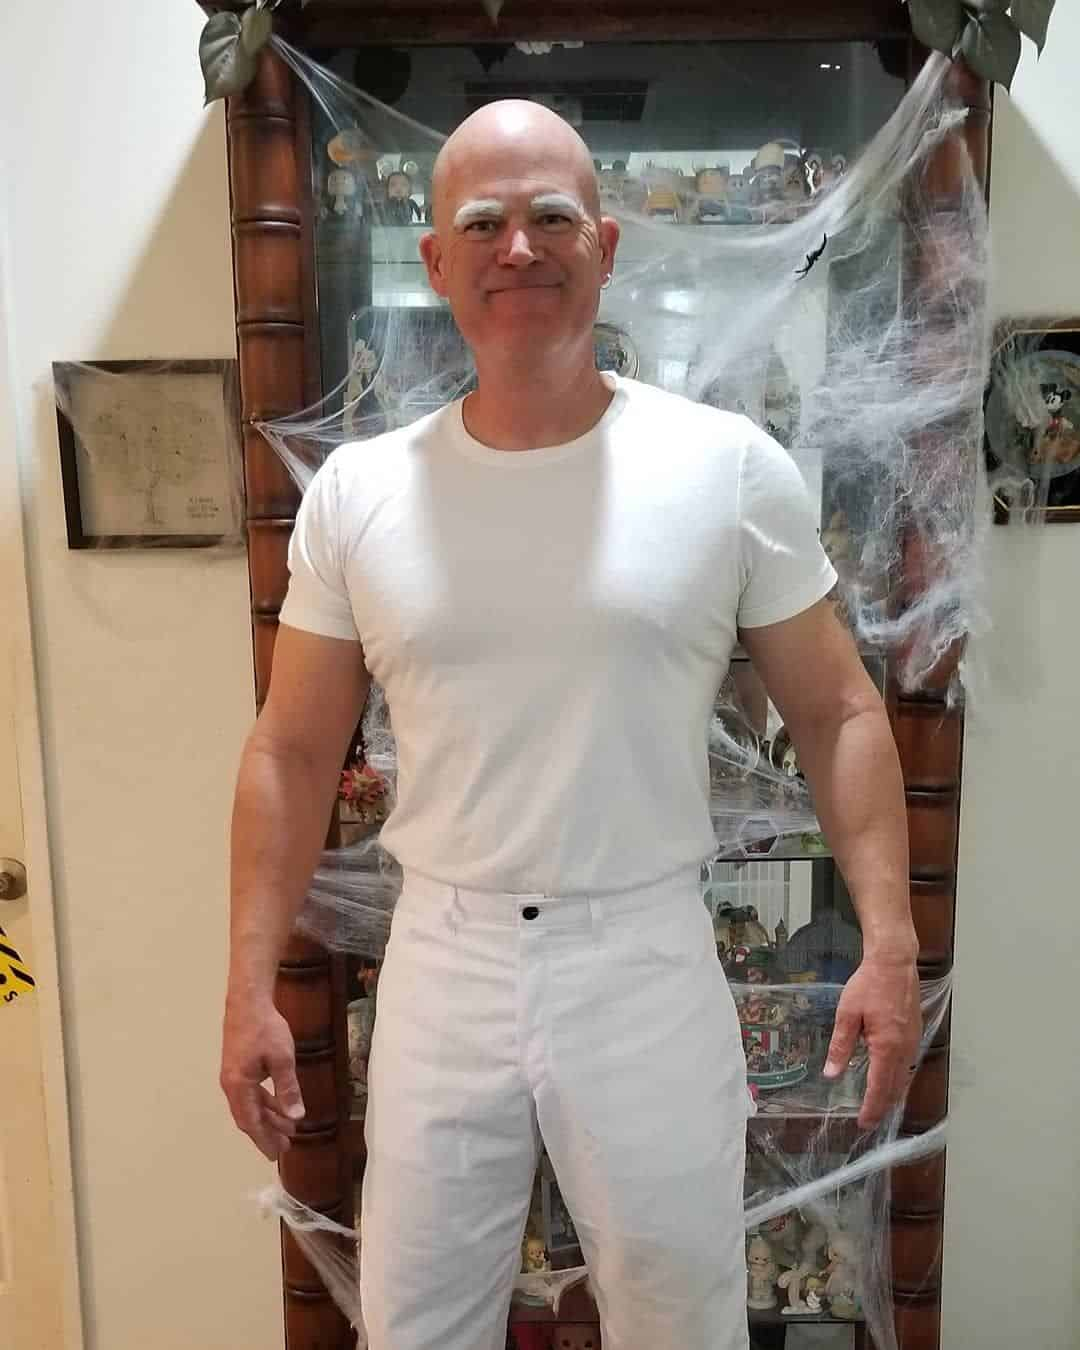 A guy dressed as Mr. Clean